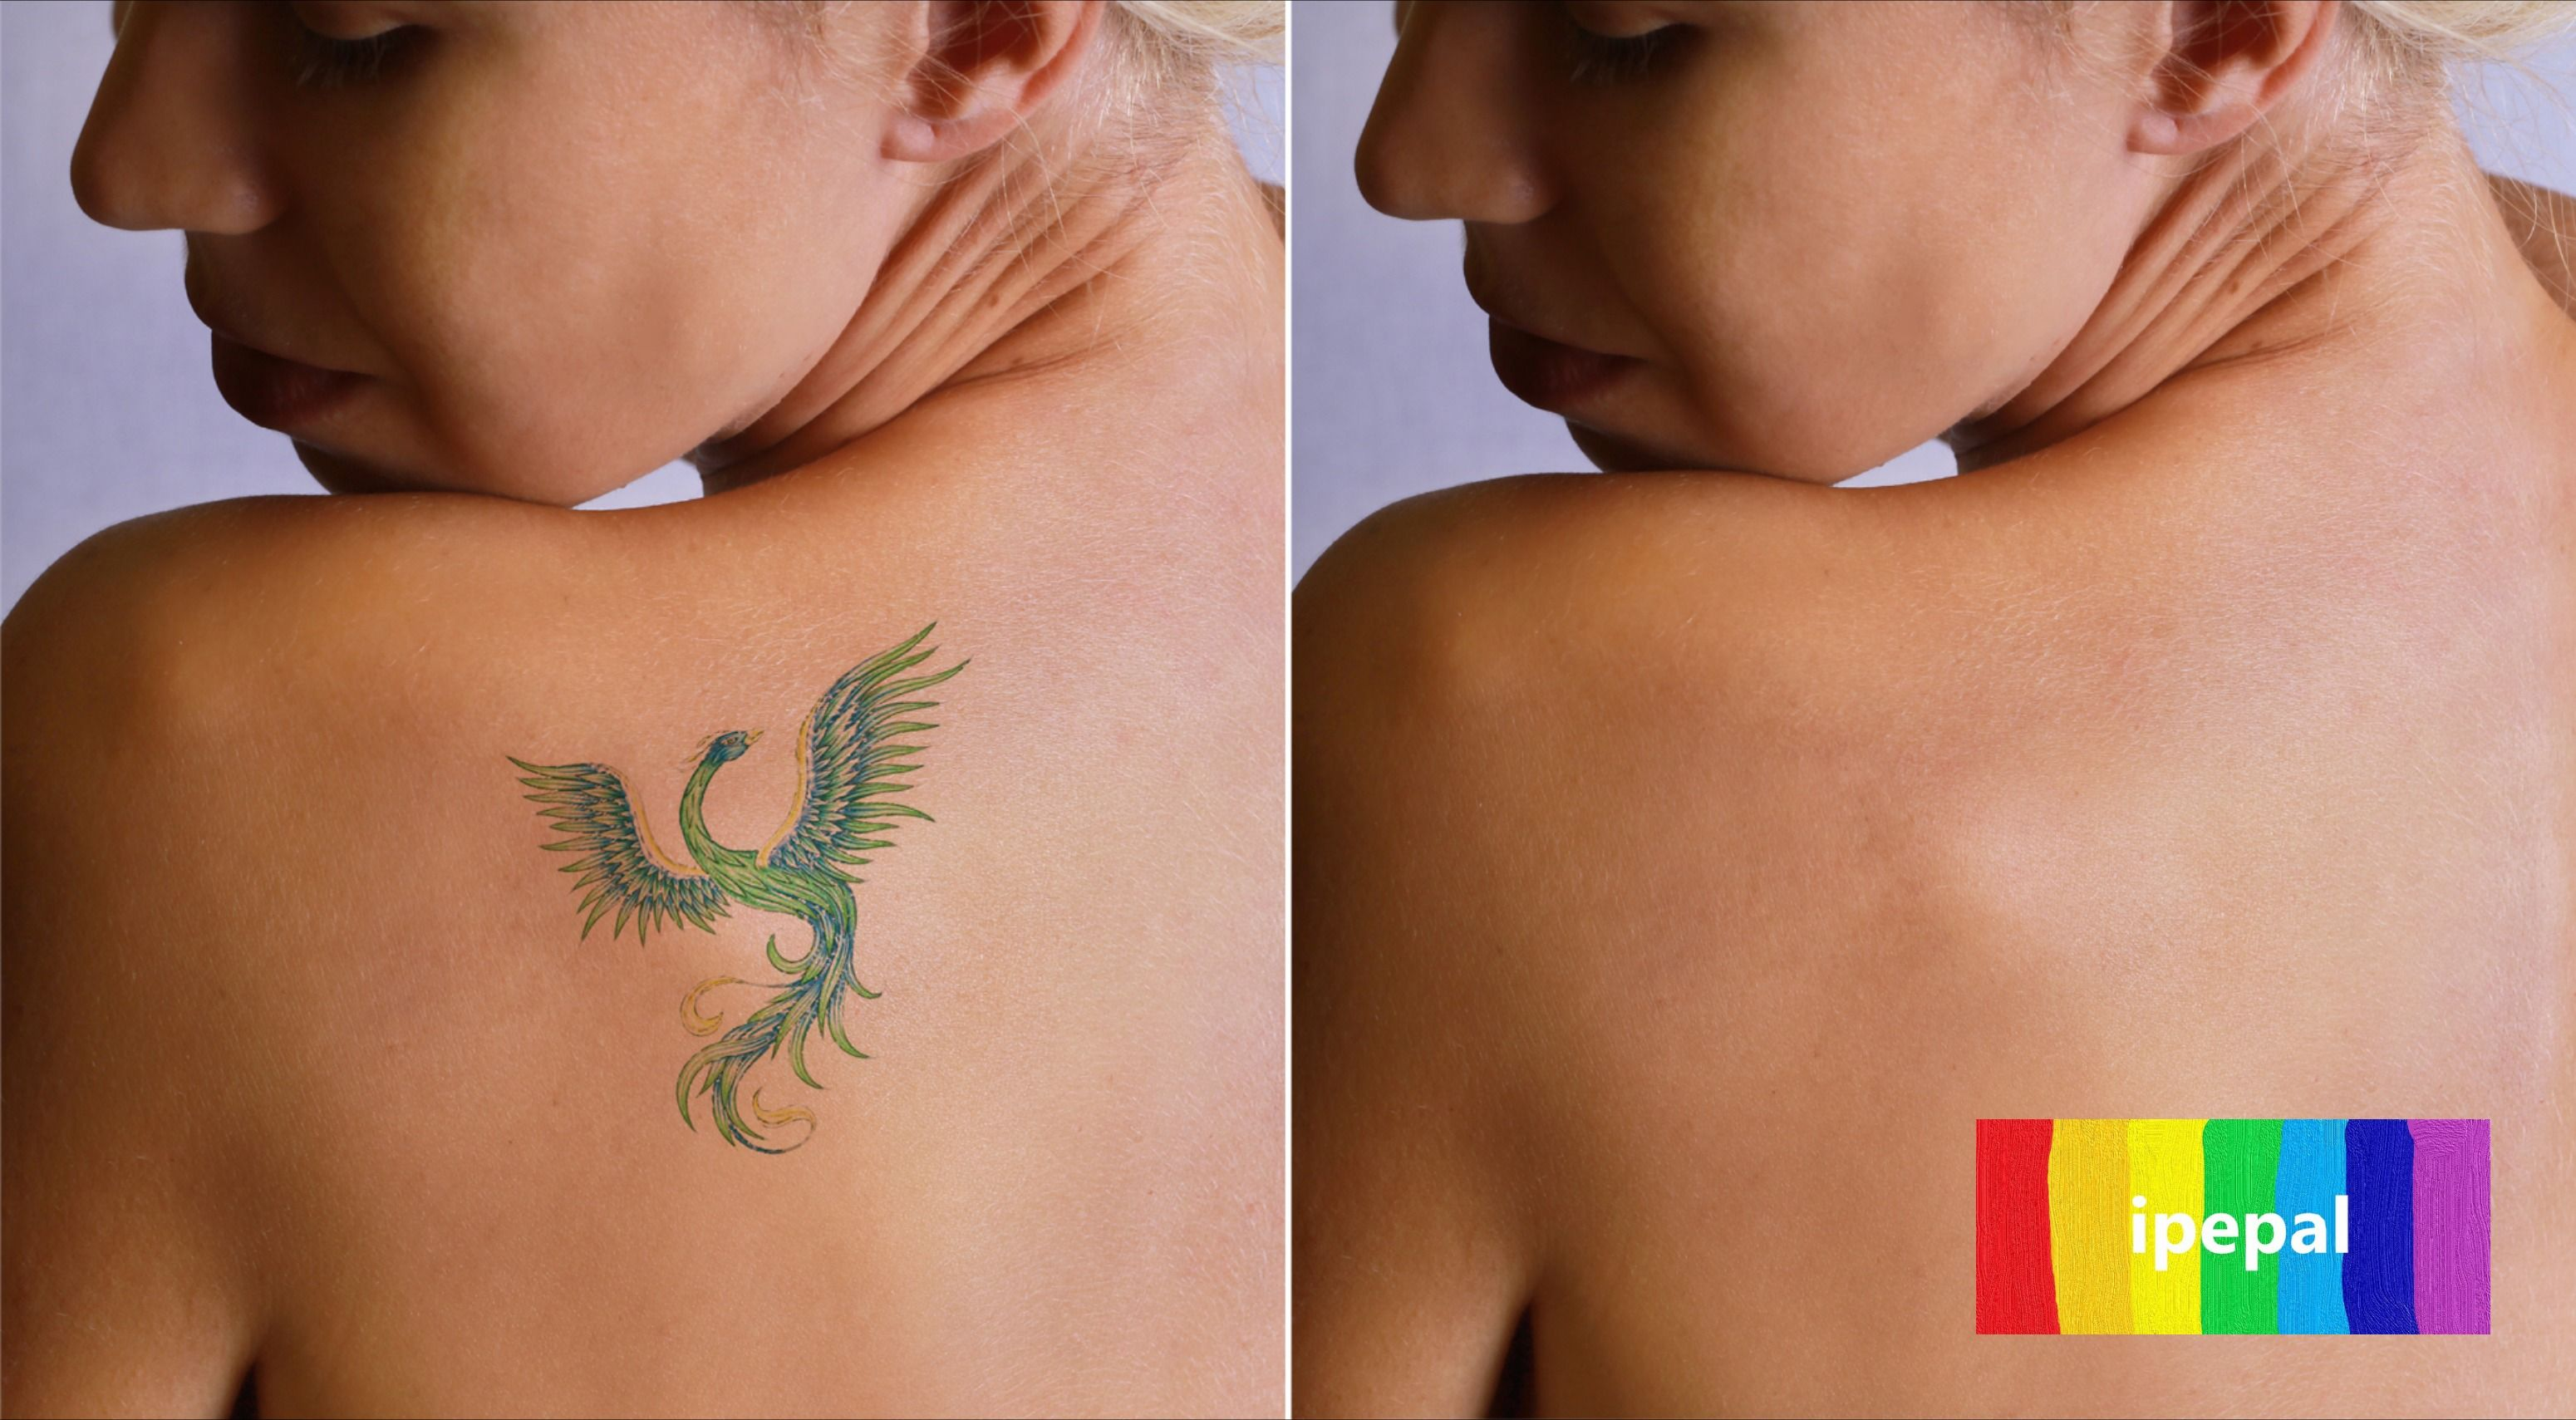 Tattoo Removal in 2020 Tattoo removal cost, Laser tattoo